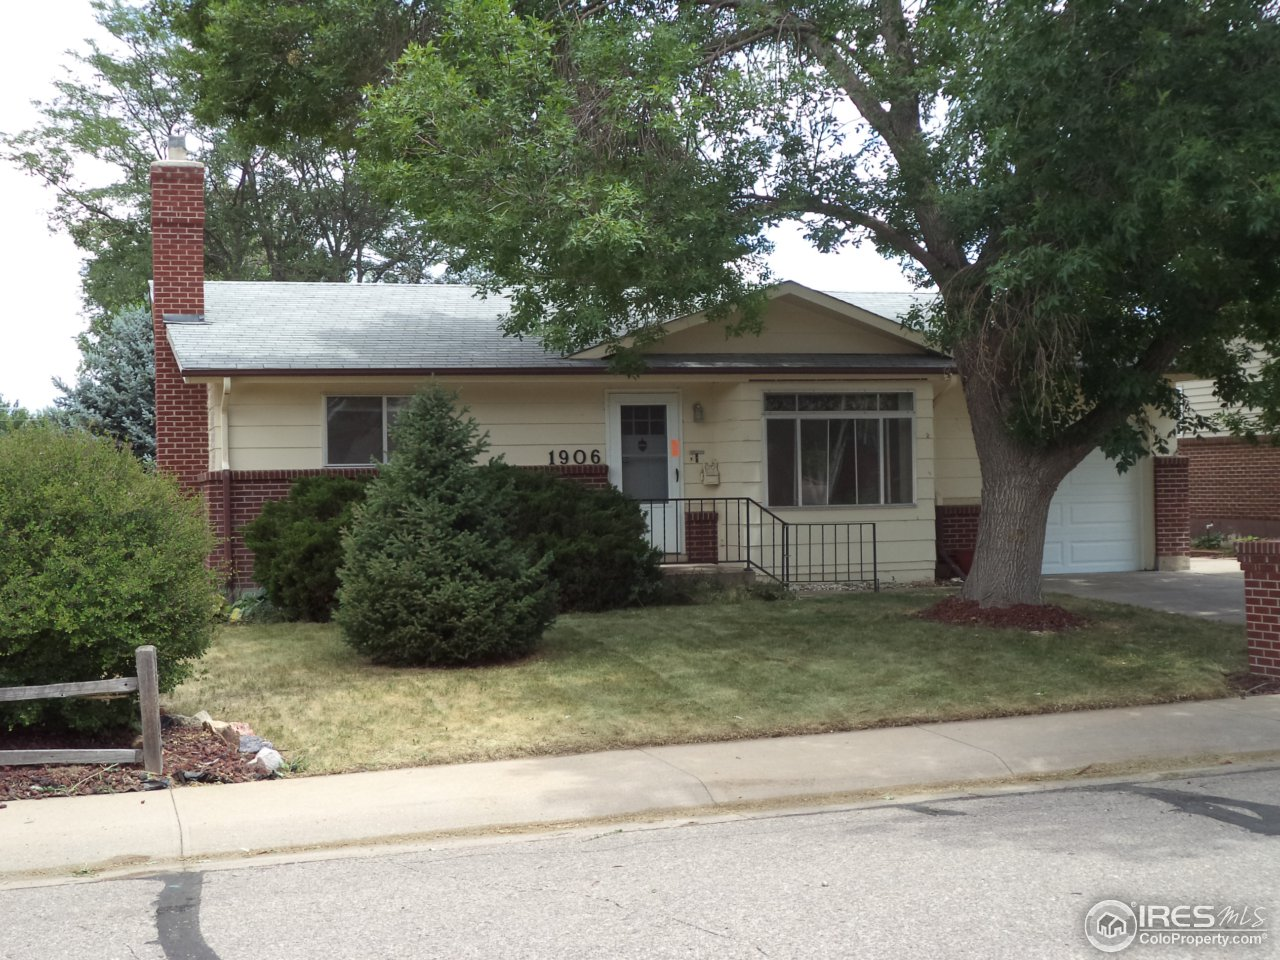 1906 24TH AVE, GREELEY, CO 80634